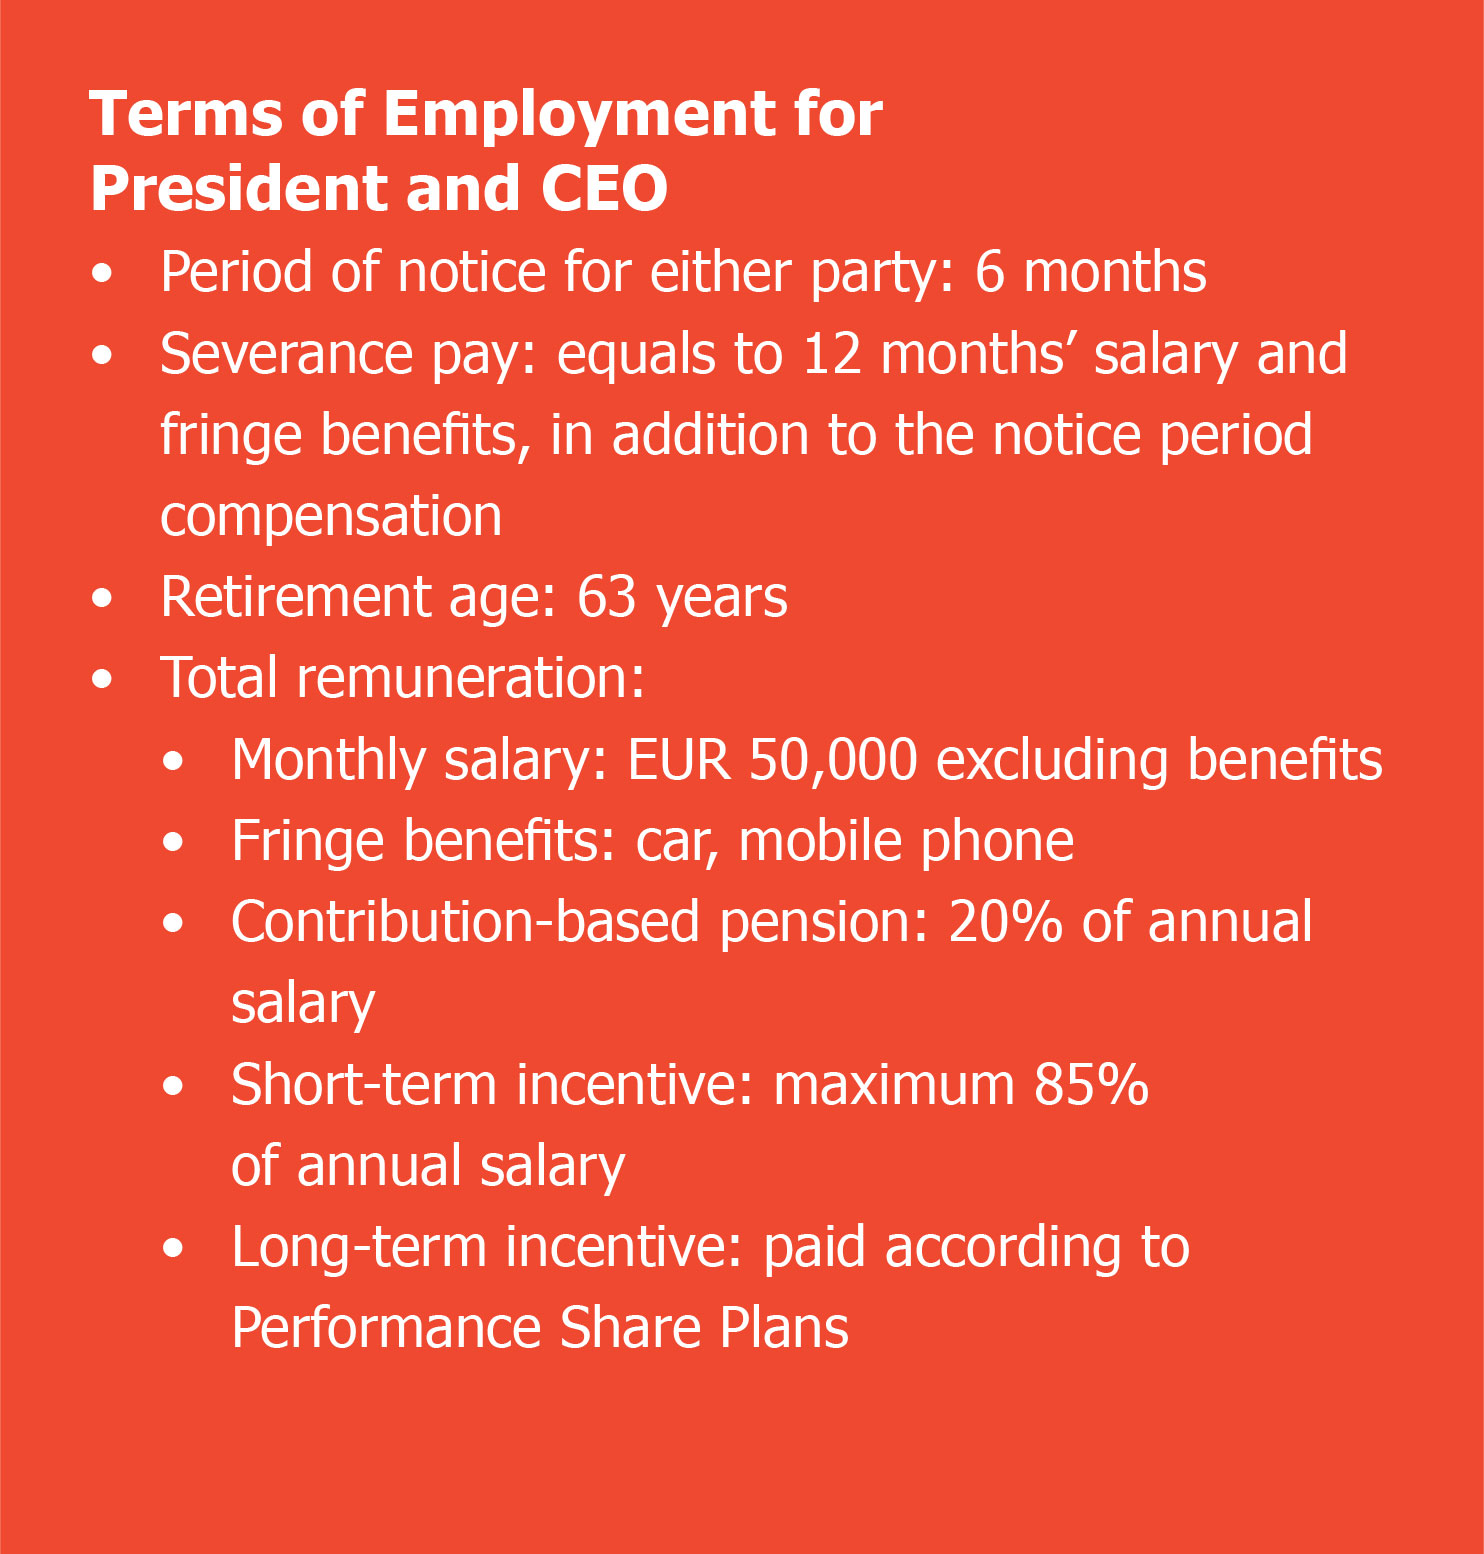 Terms of Employment for President and CEO